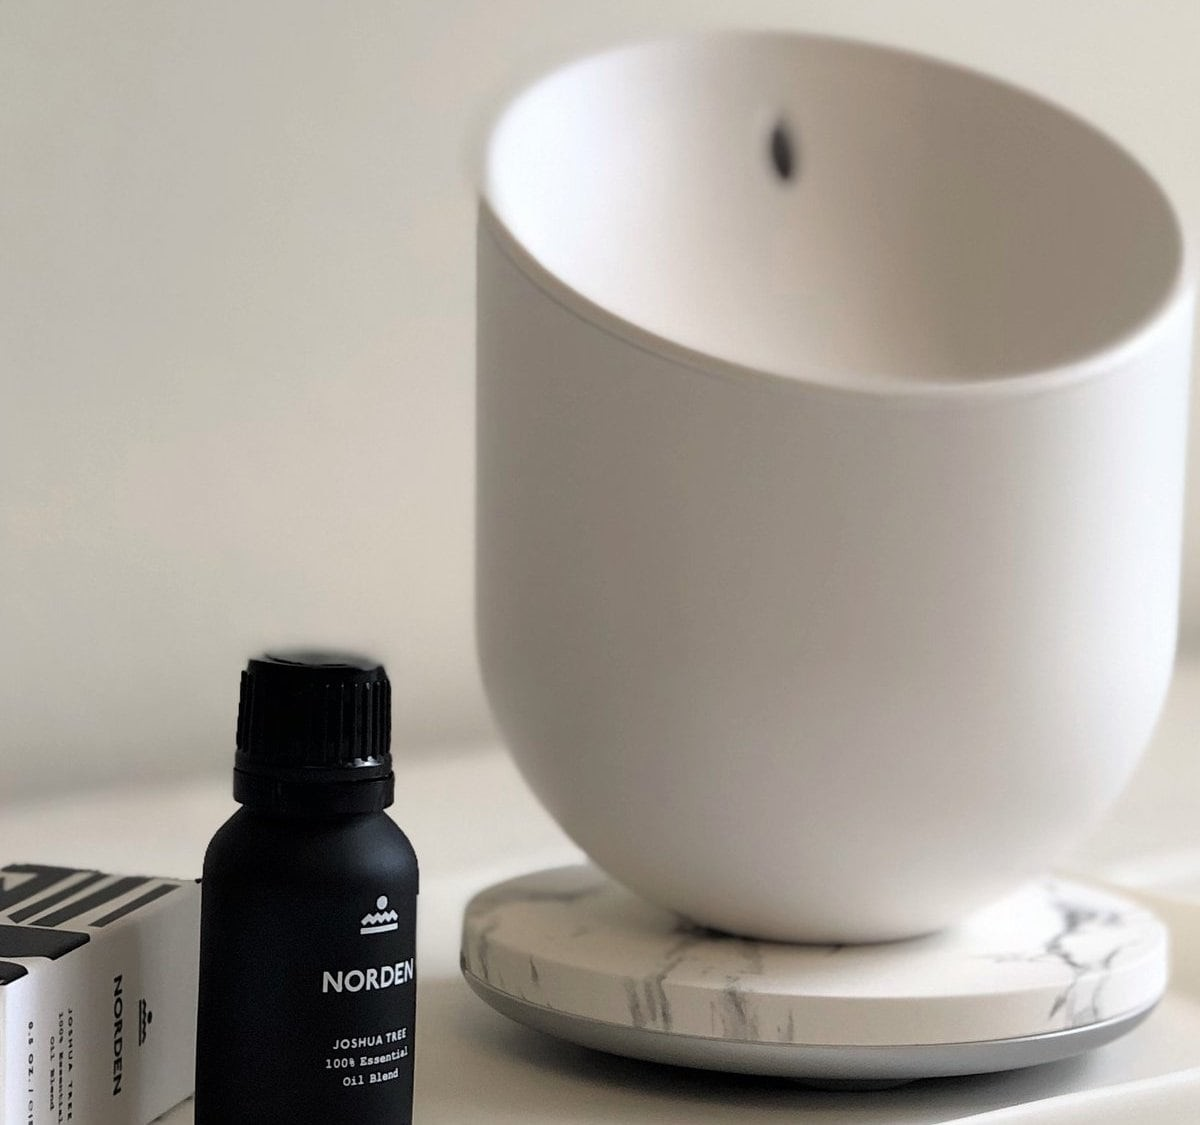 Lexon Miami Scent Ultrasonic Aroma Diffuser fills a room with beautiful fragrance